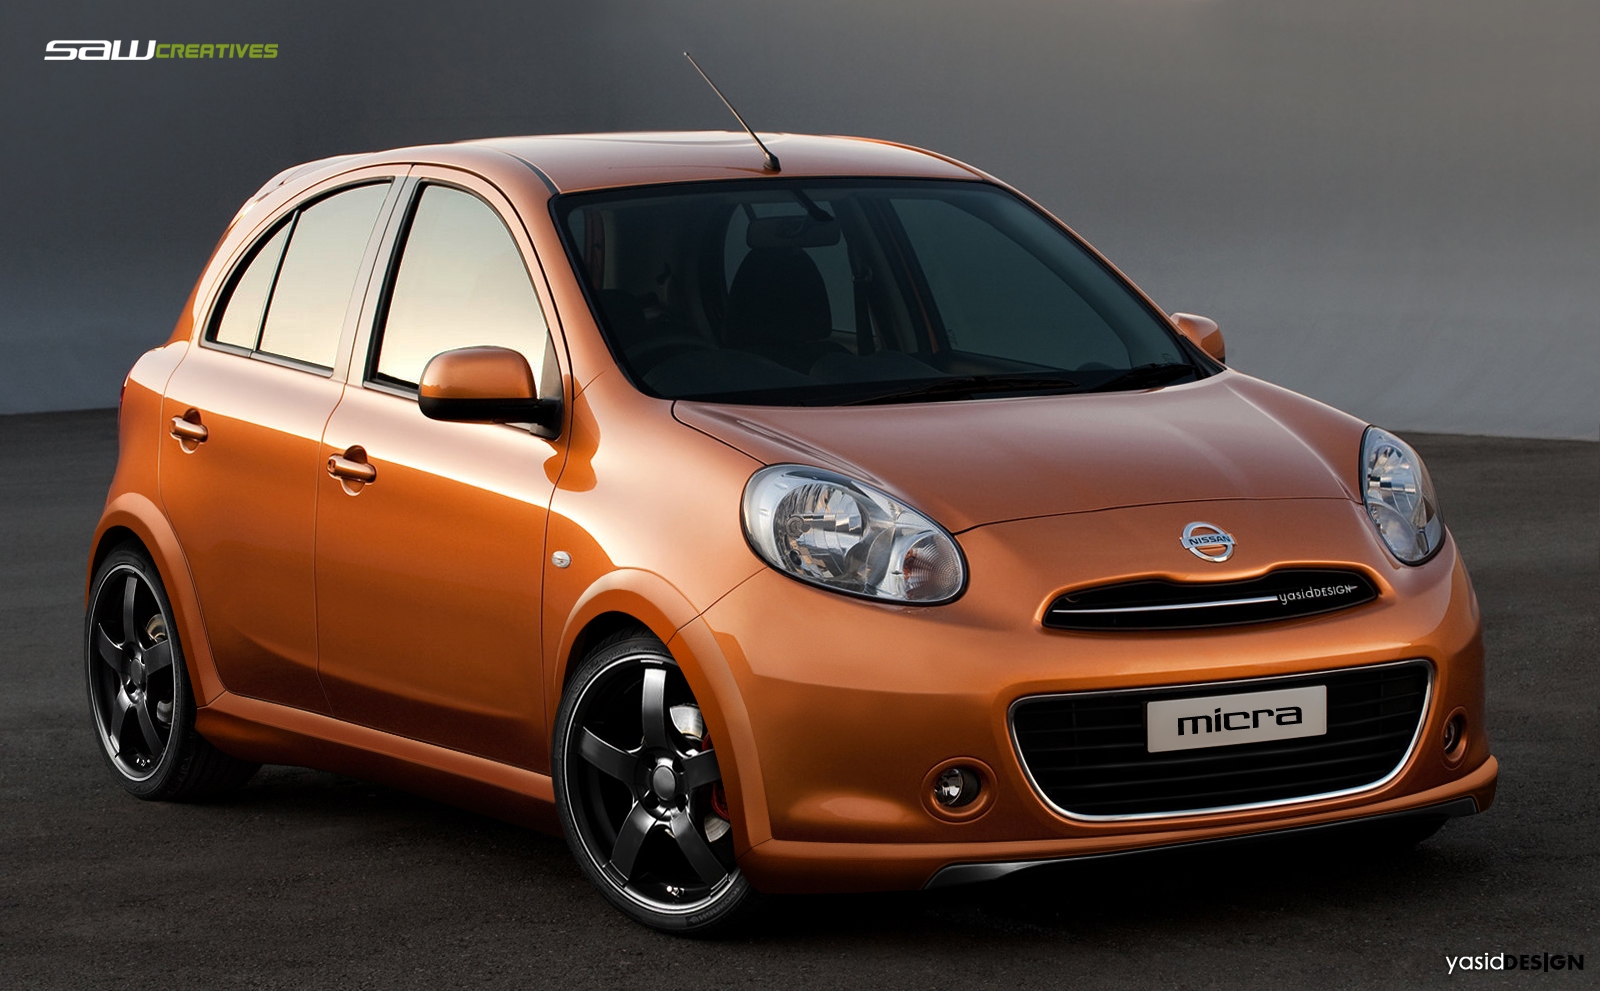 nissan micra 2011 frontview by yasiddesign on deviantart